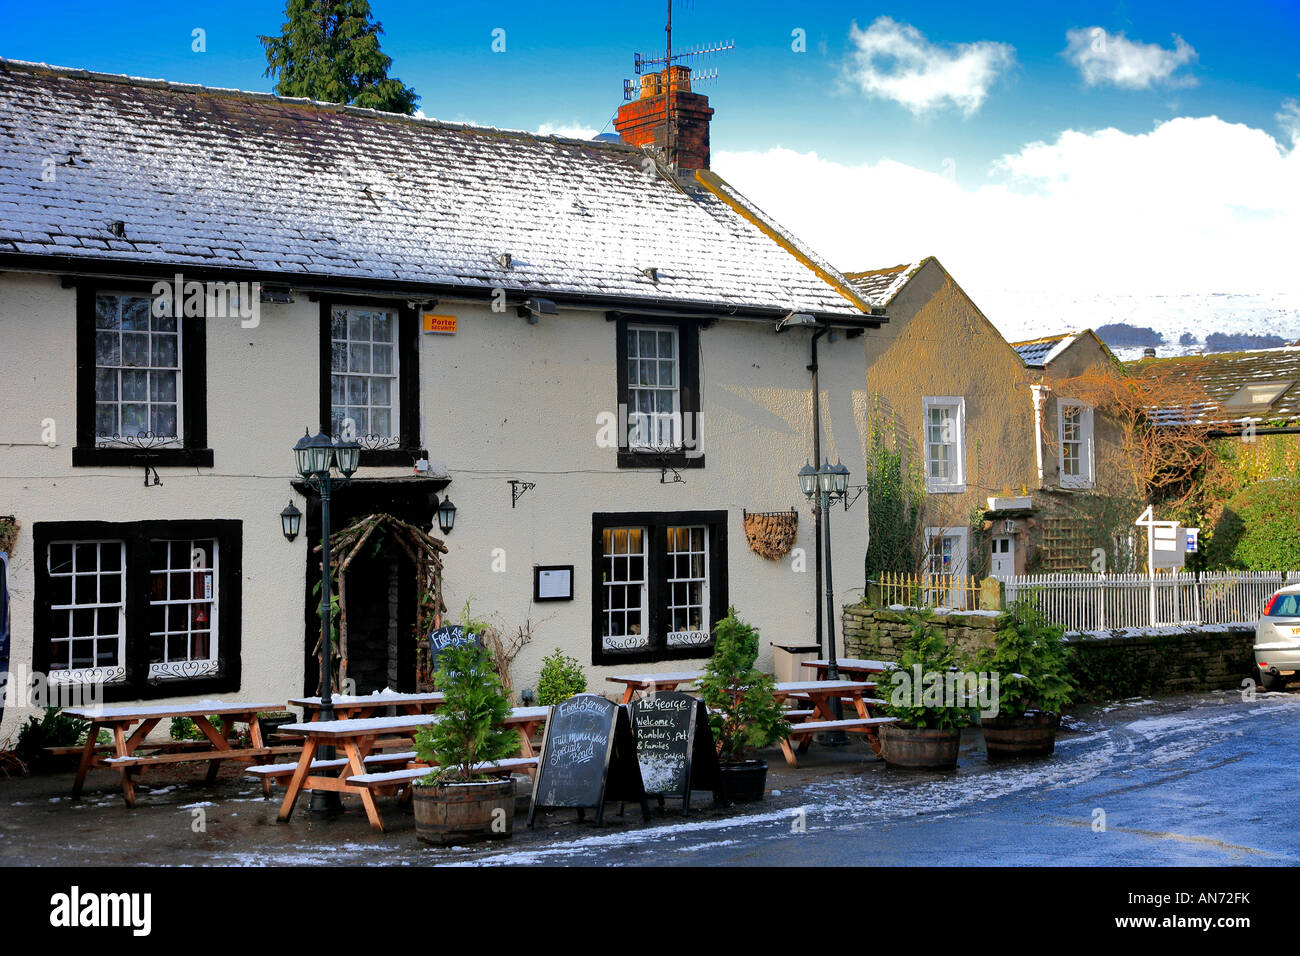 the george pub castleton town hope valley peak district national